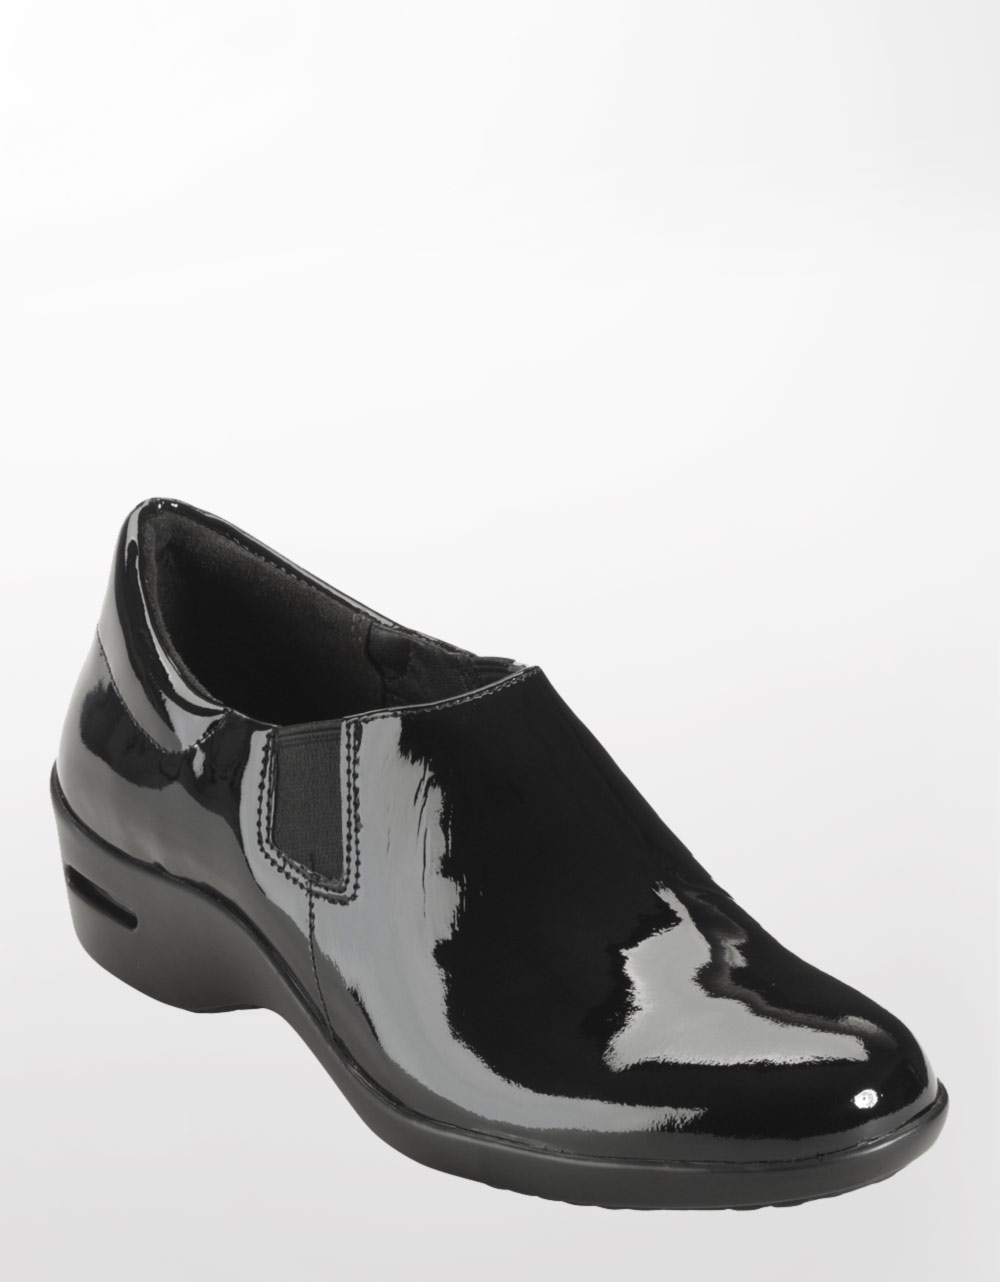 Asos Cole Haan Womens Shoes